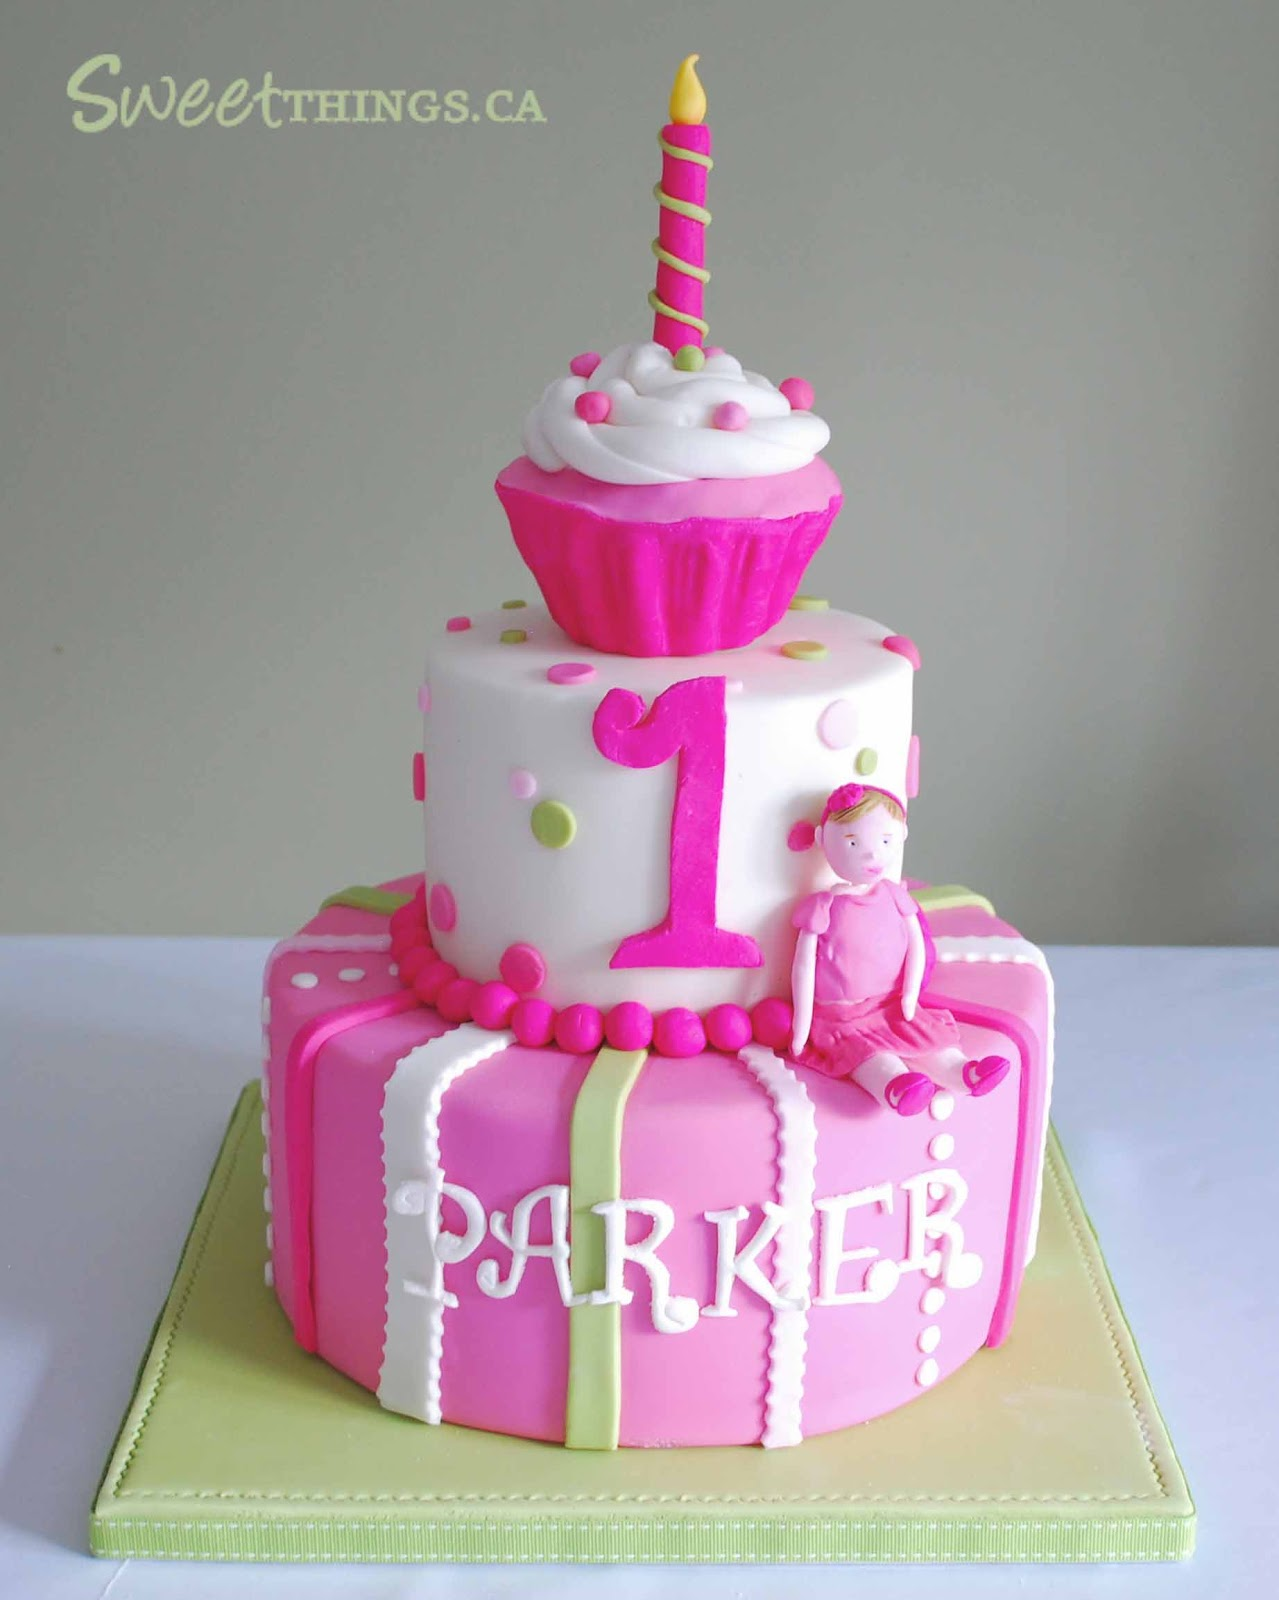 Cake Design For One Year Old Birthday : SweetThings: Colorful 1st Birthday Cake